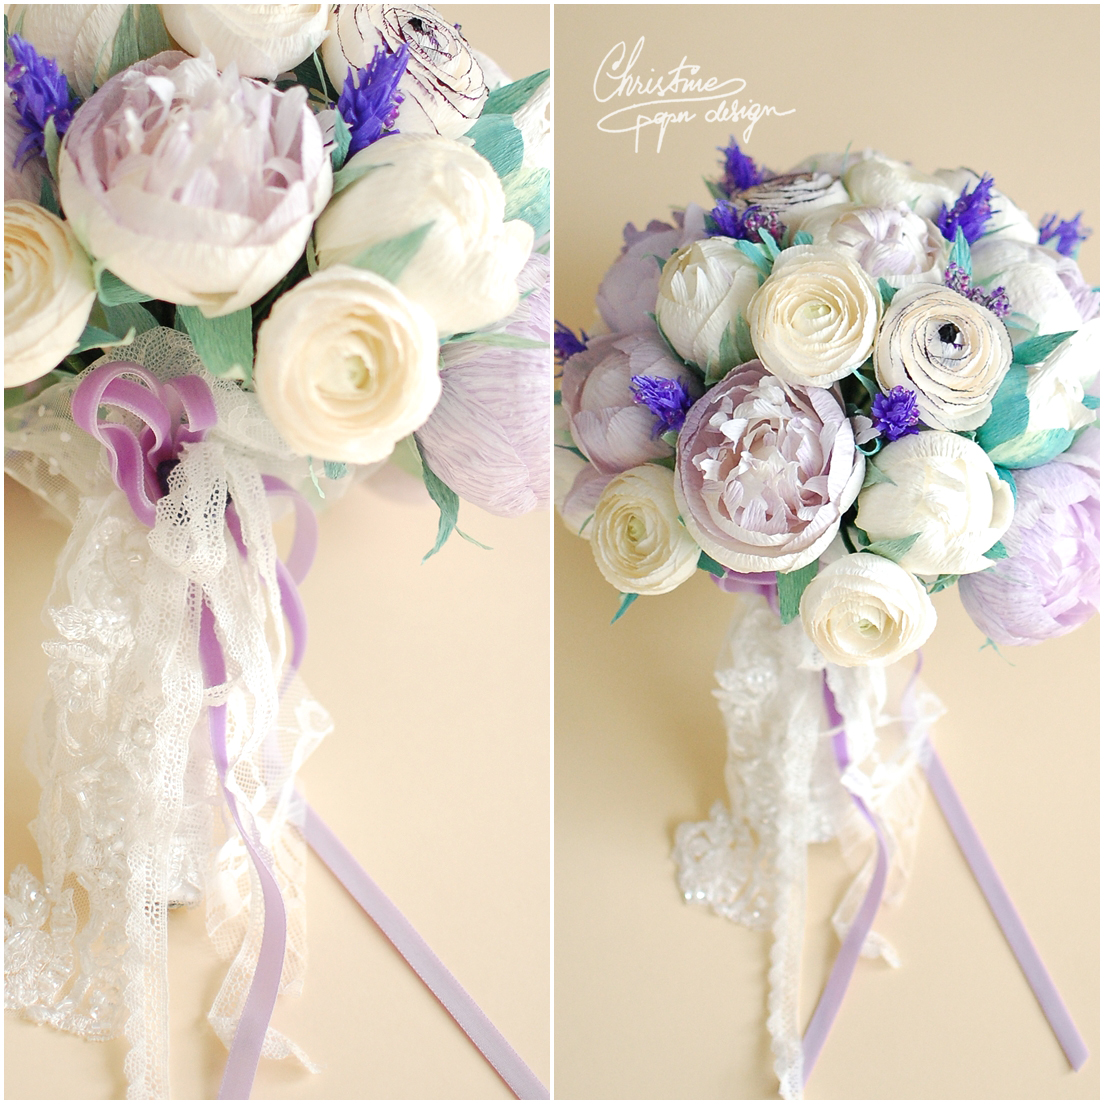 2Christine paper design - paper peonies bridal bouquet